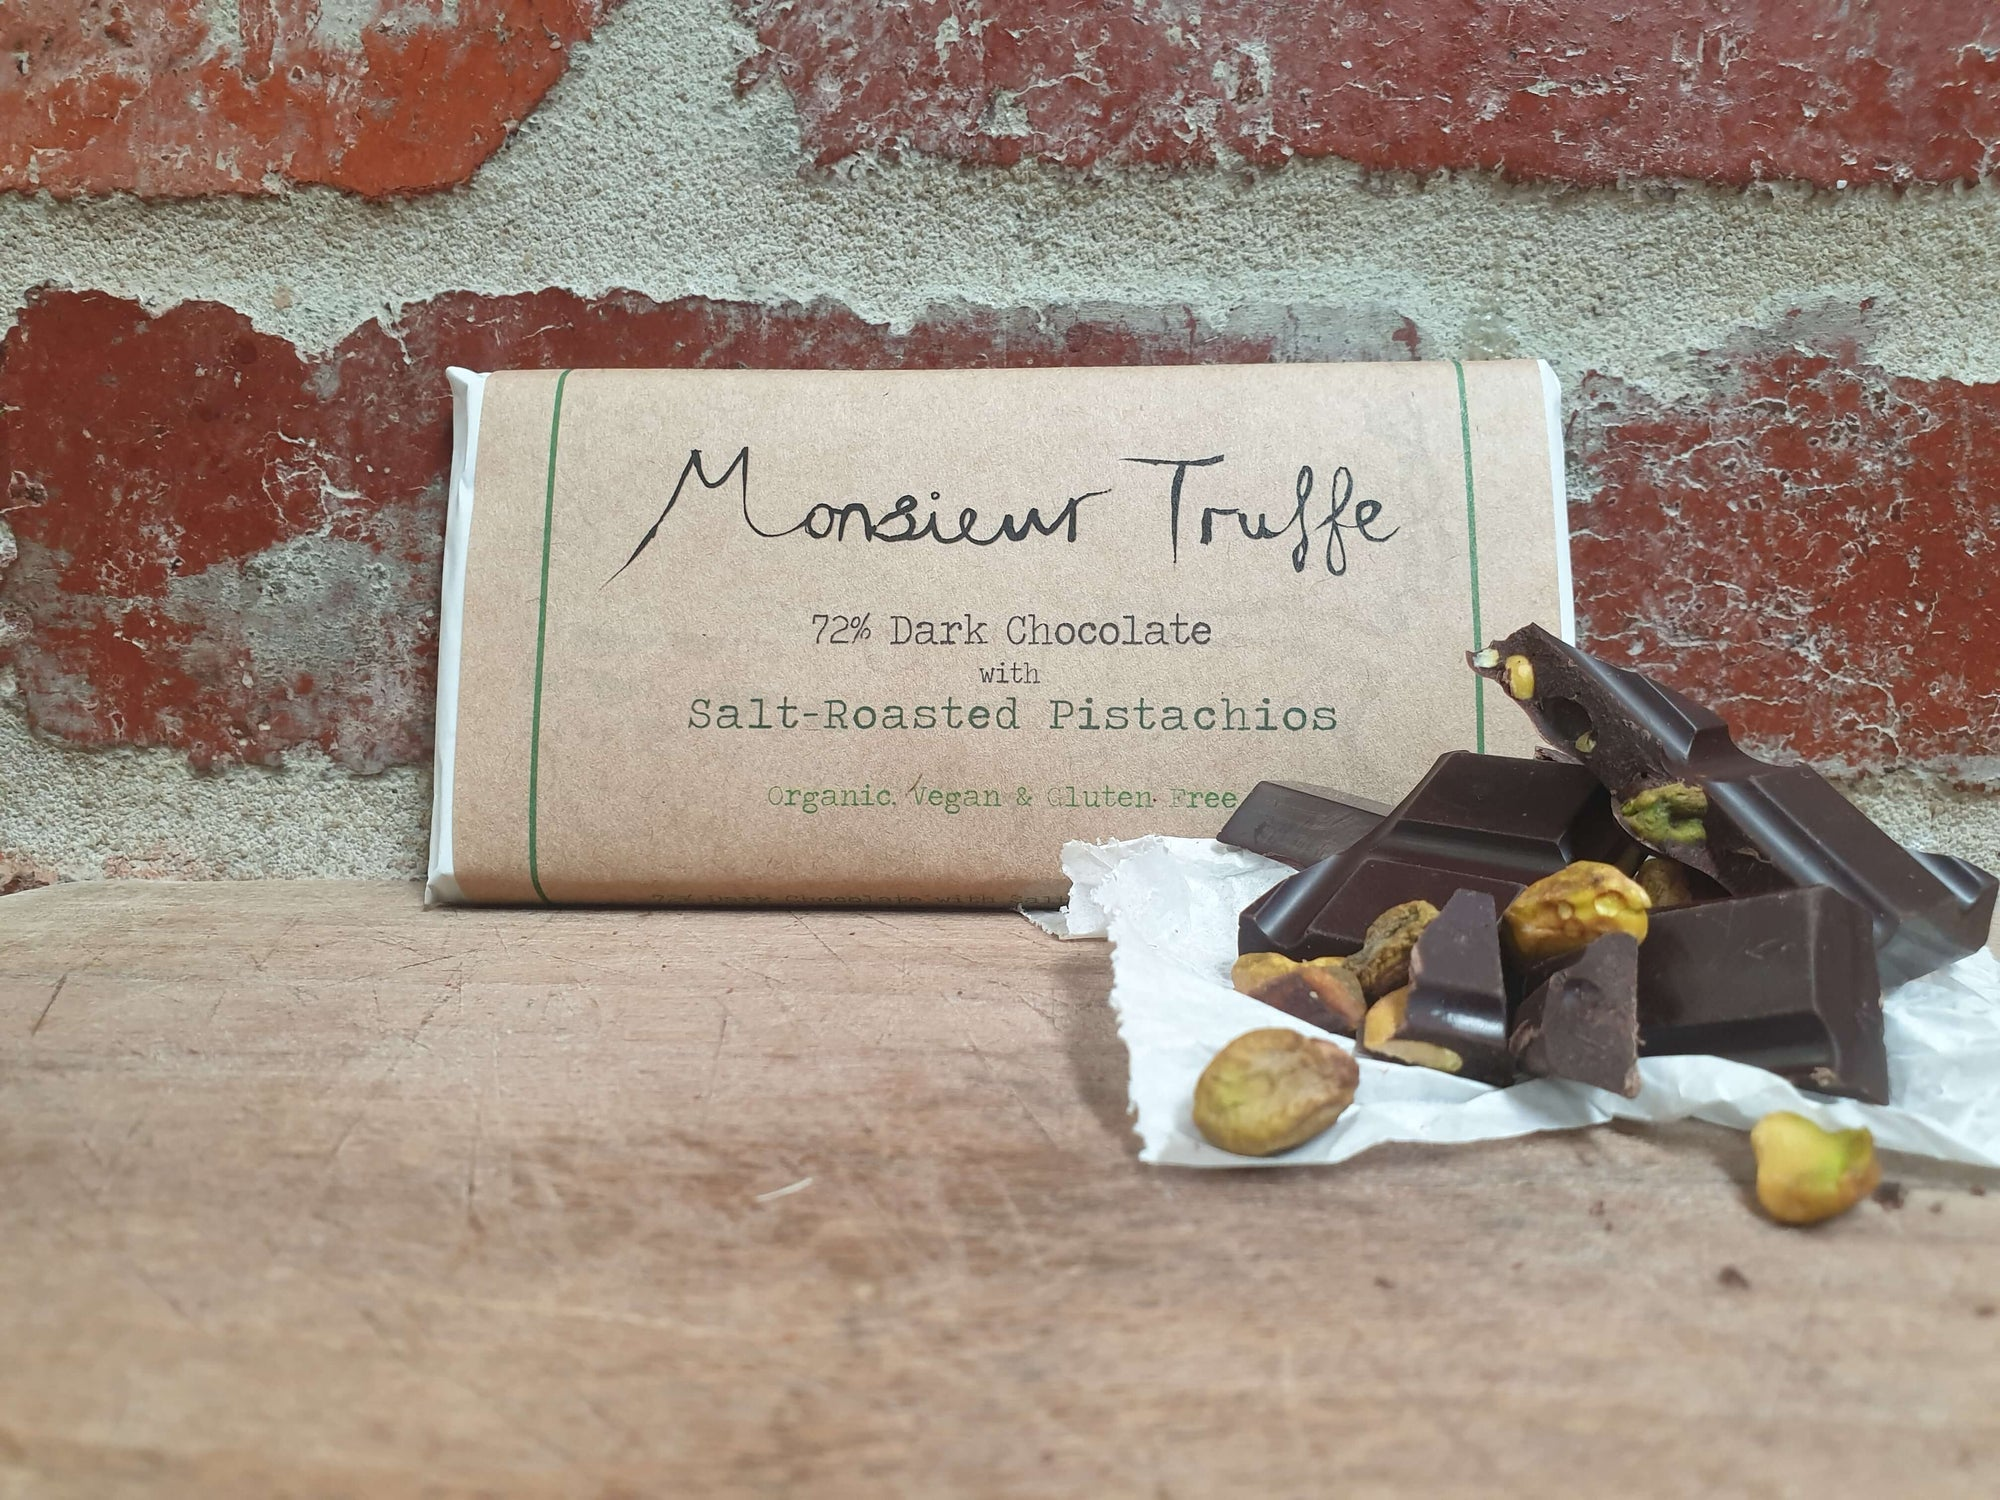 Organic Monsieur Truffe - 72% Dark with Salt-Roasted Pistachios - Vegan - City Chocolates